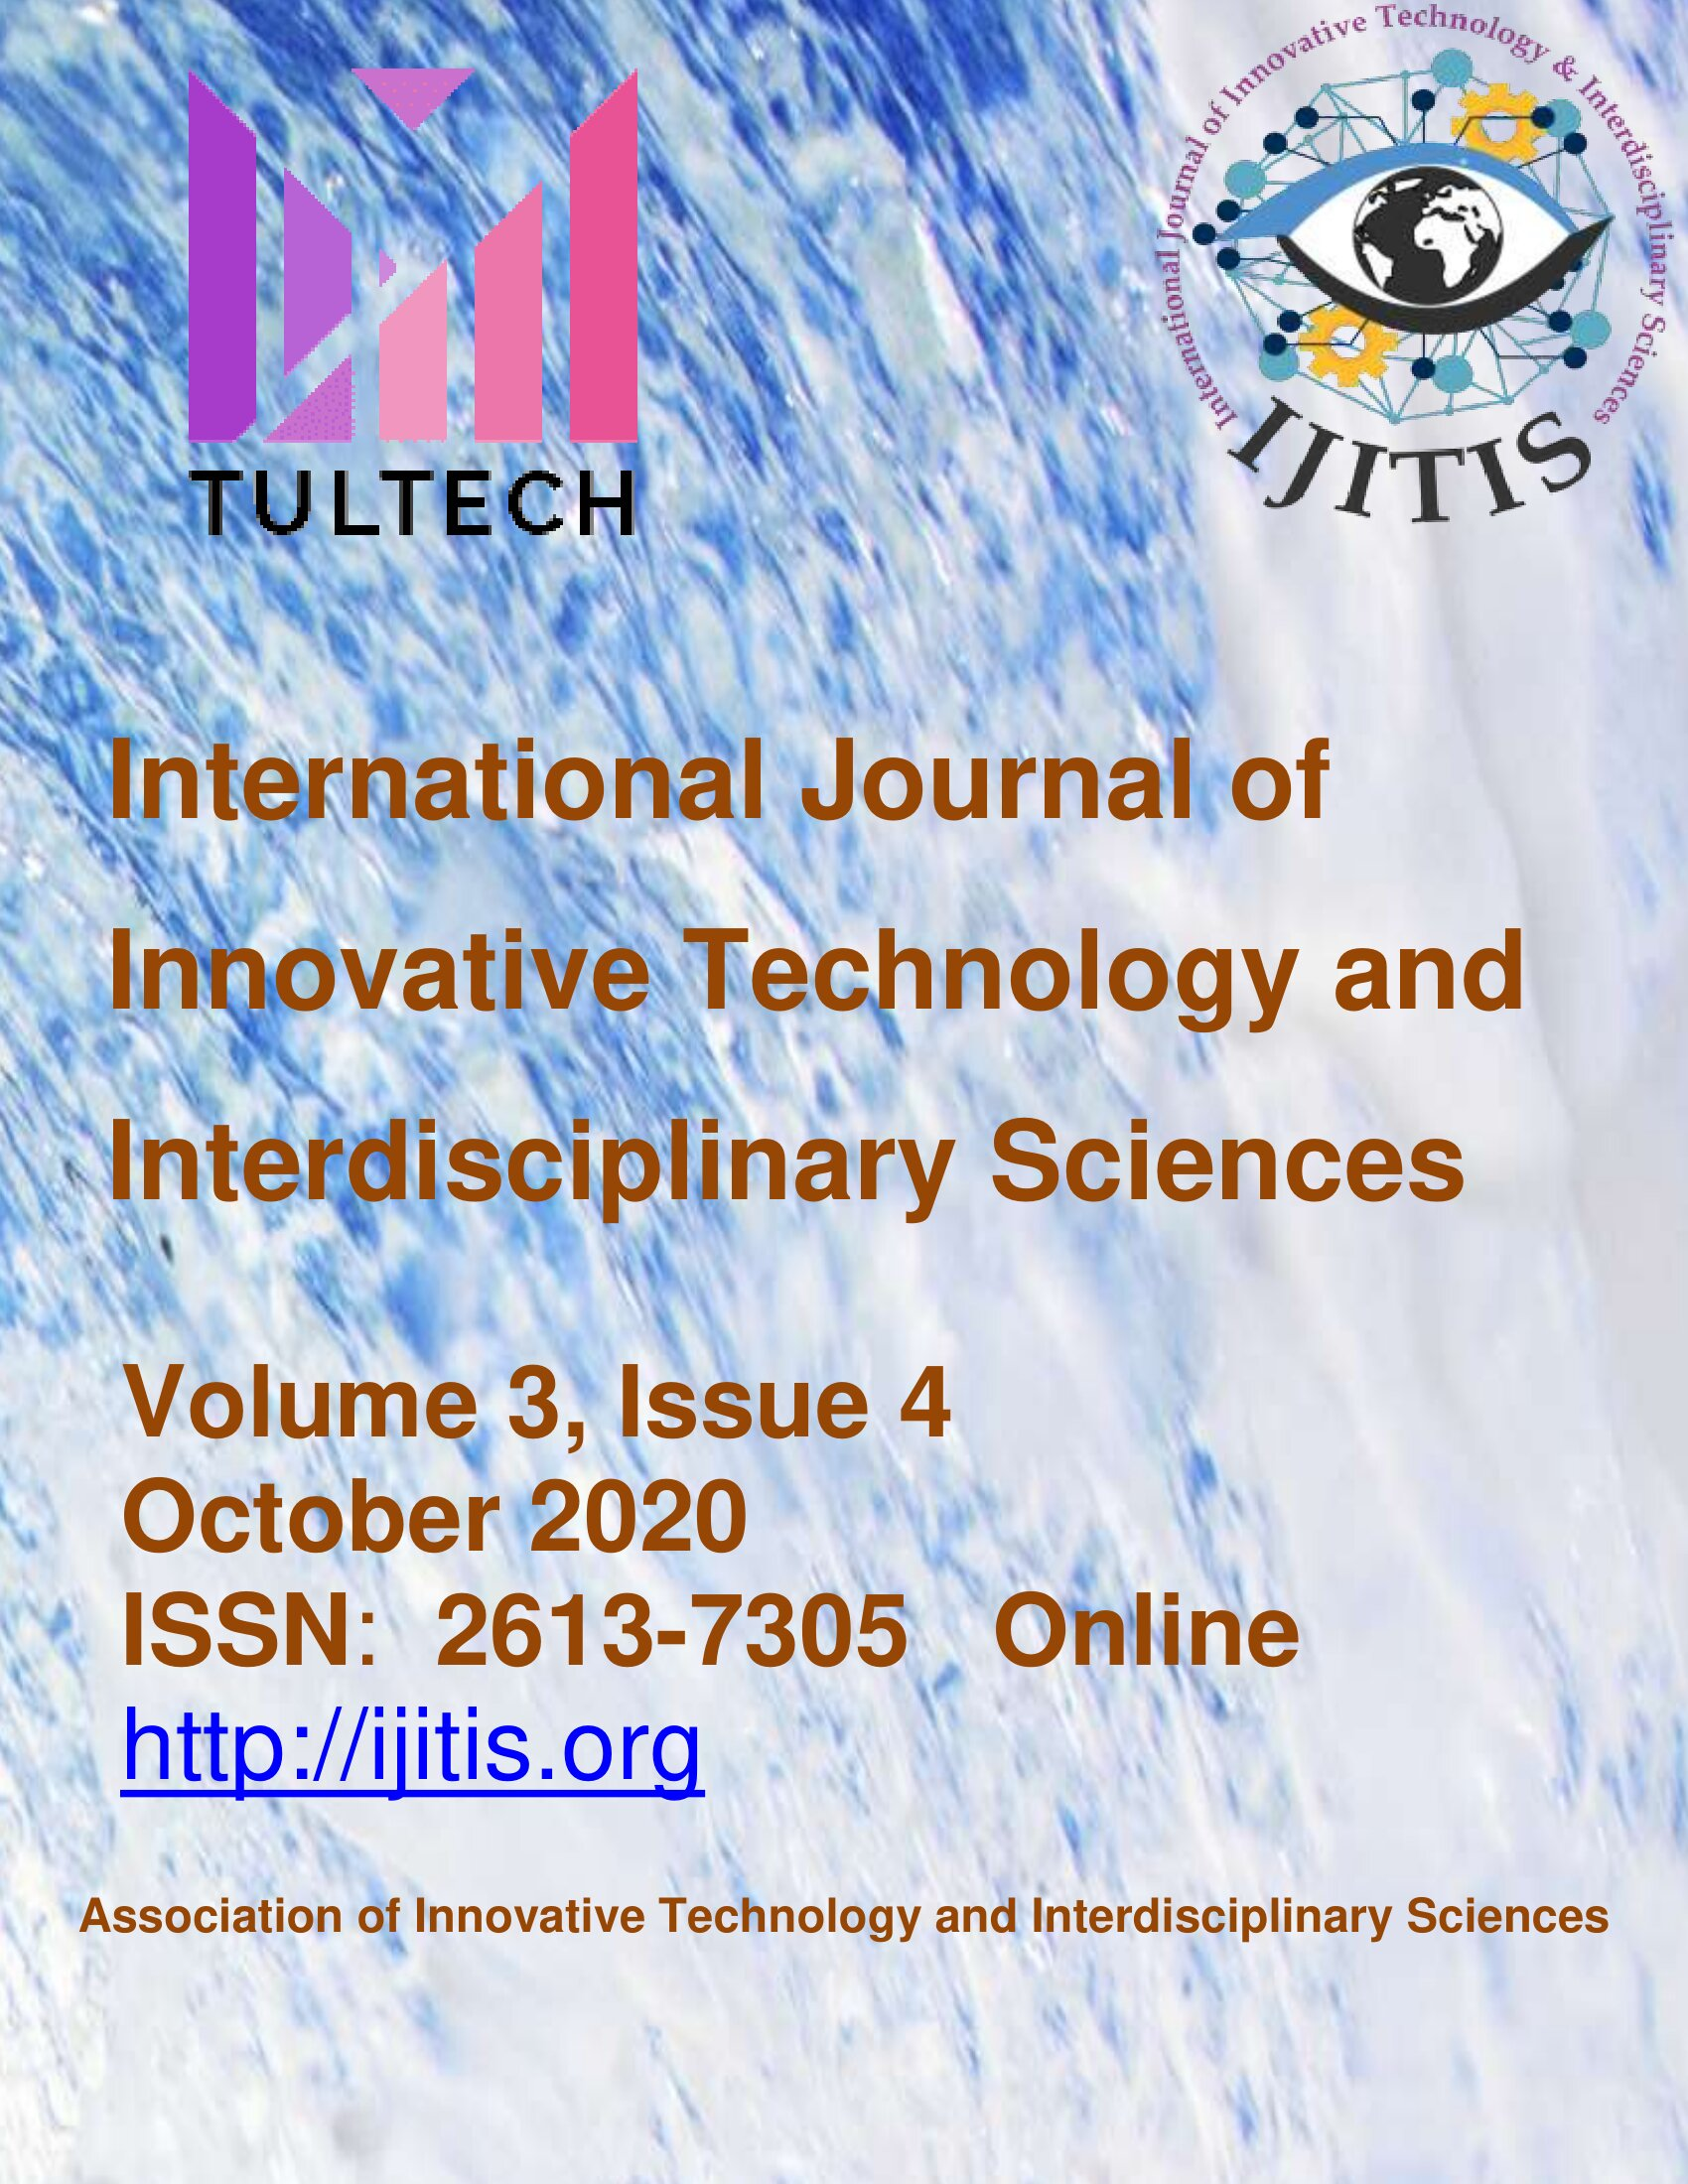 View Vol. 3 No. 4 (2020): International Journal of Innovative Technology and Interdisciplinary Sciences - Volume 3, Issue 4